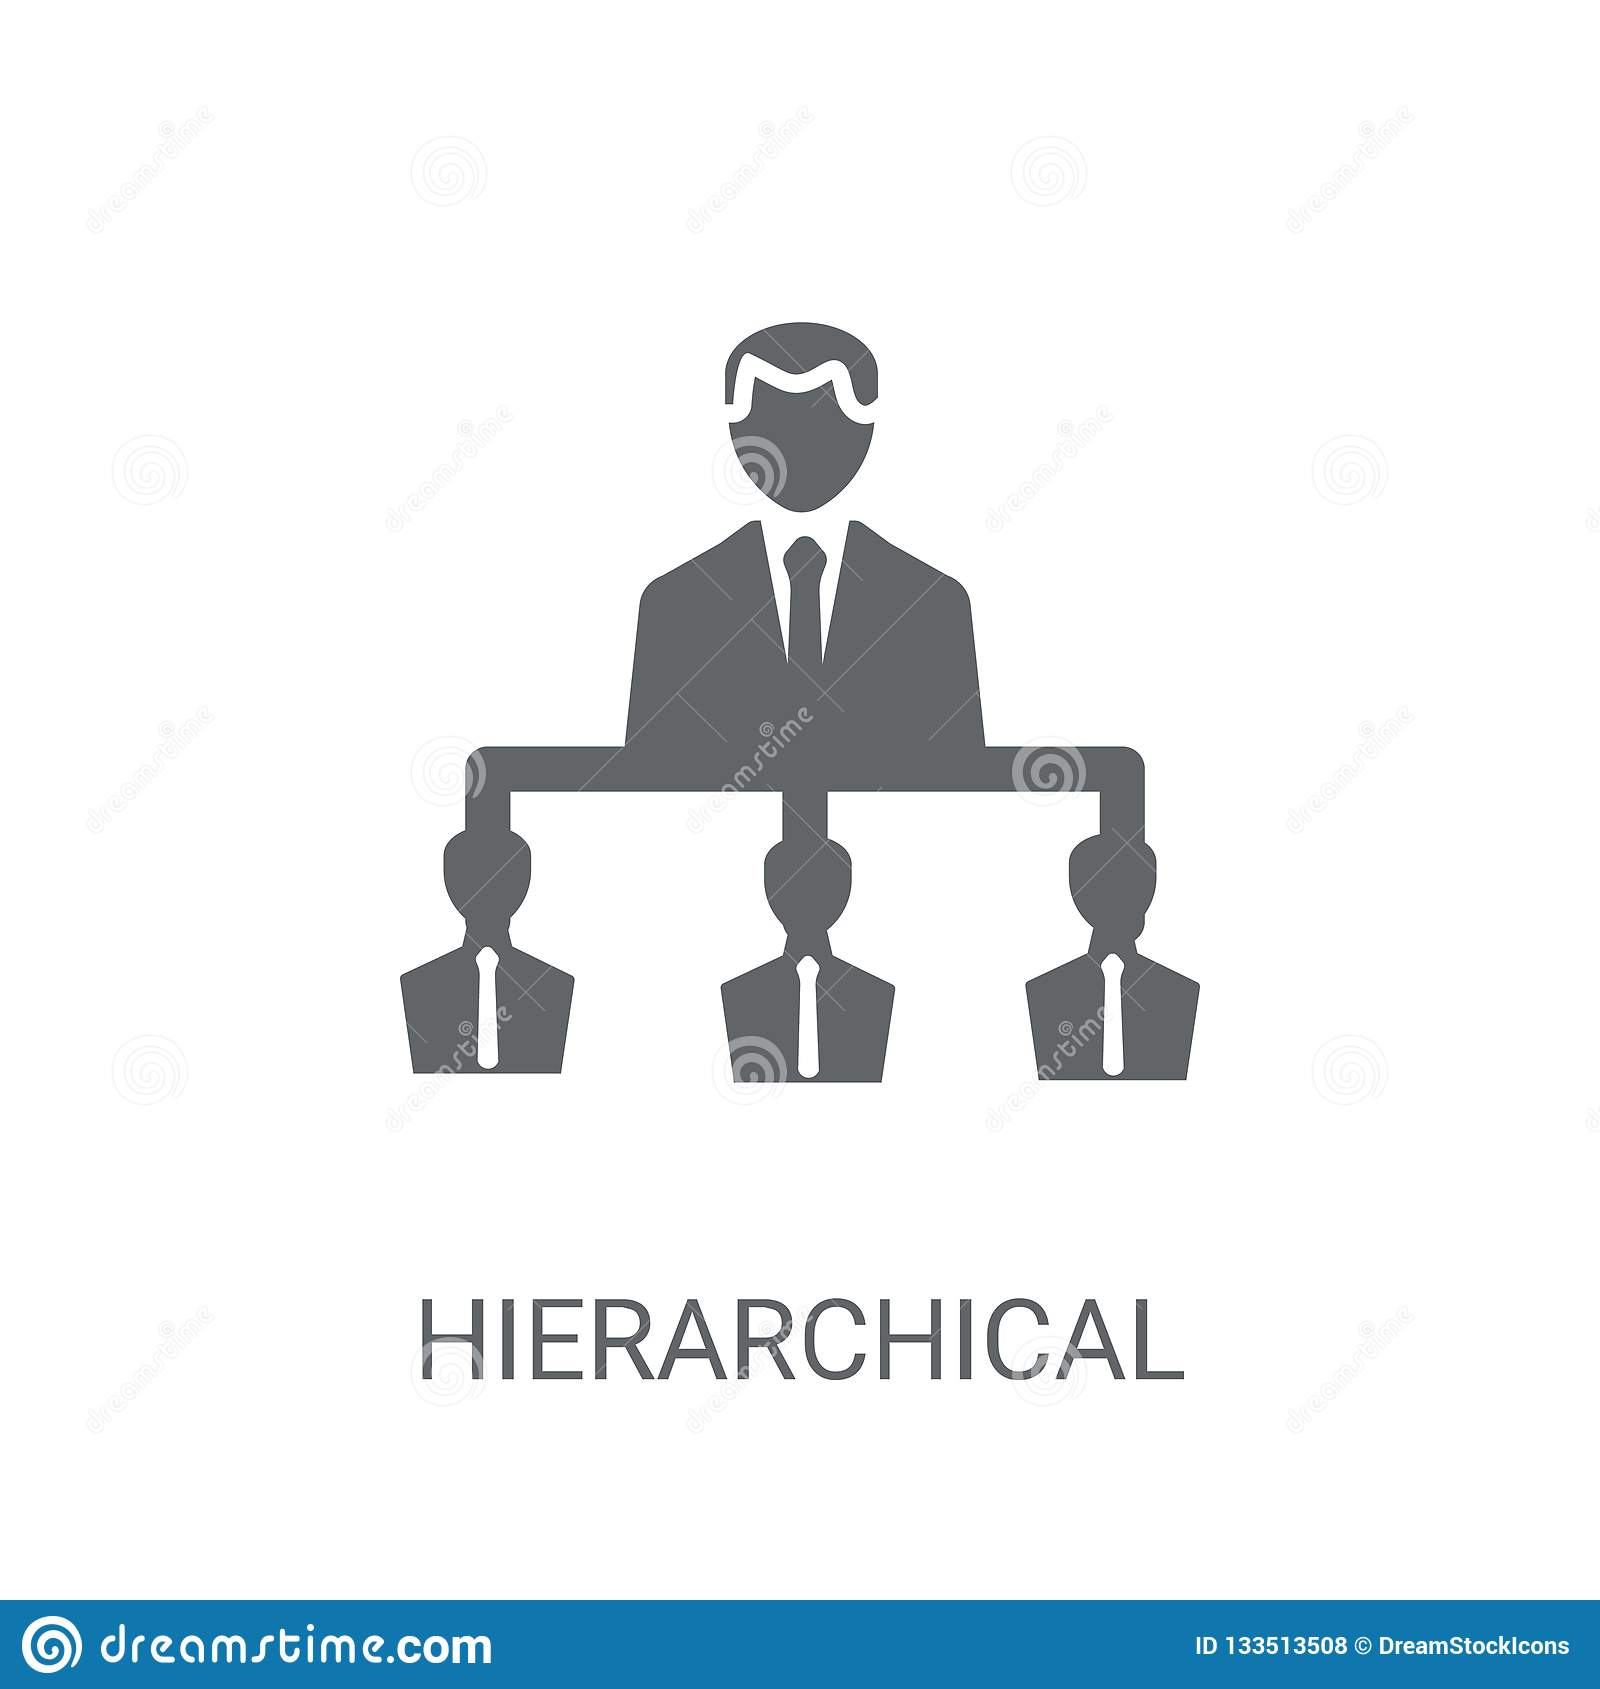 Hierarchical structure icon. Trendy Hierarchical structure logo